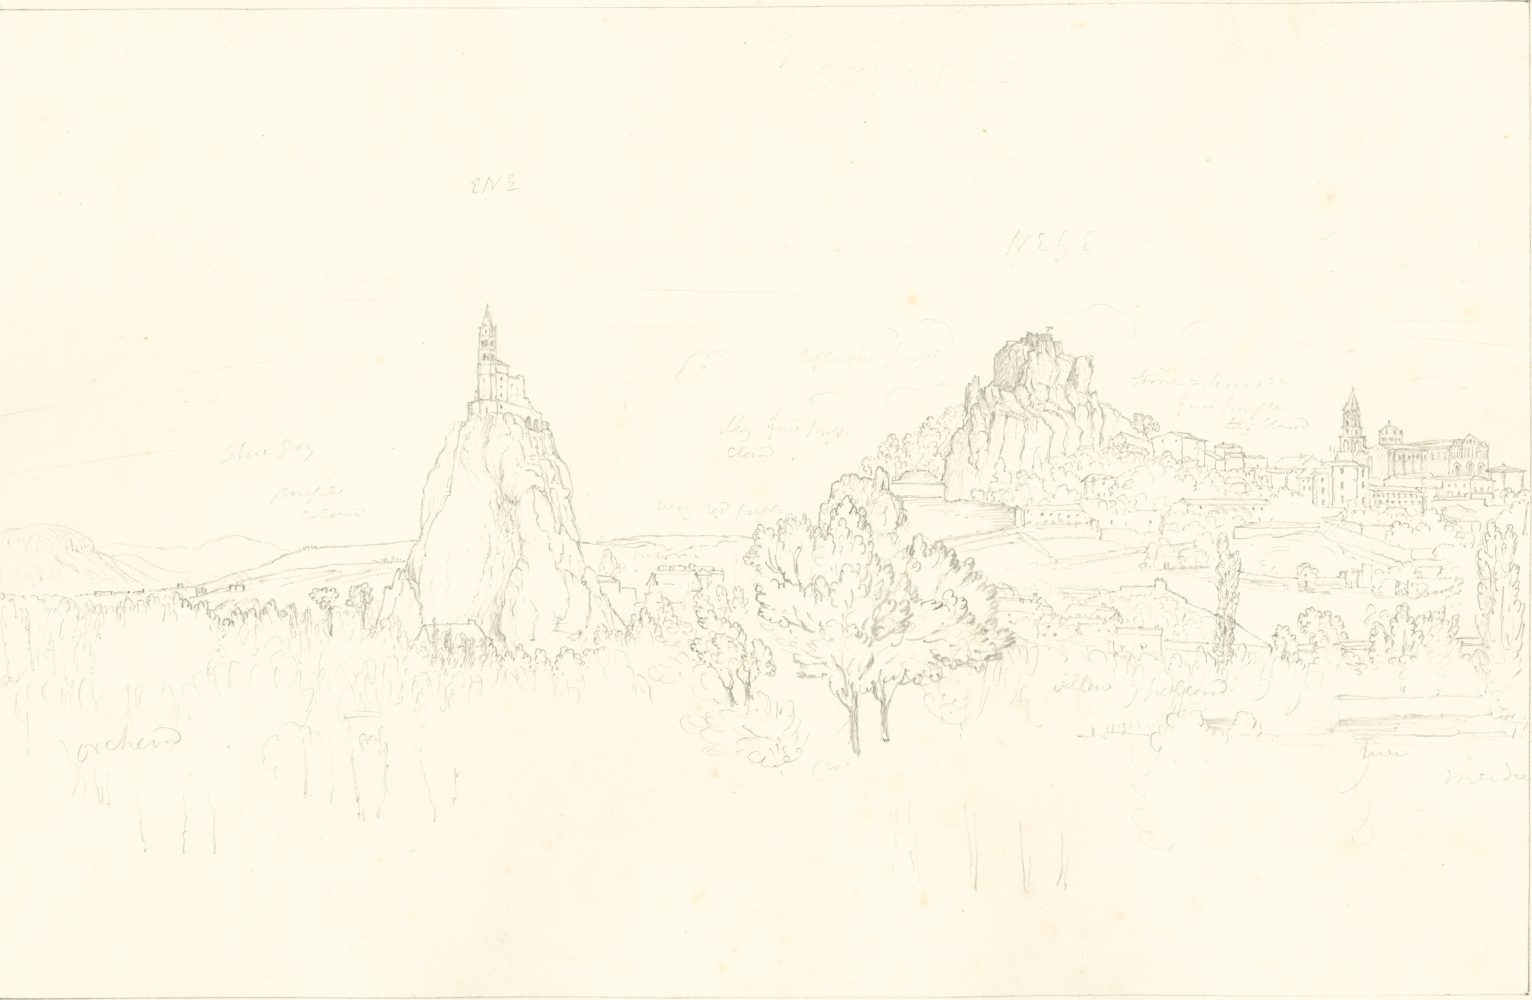 """Sir John Frederick William HERSCHEL (English, 1792-1872) """"No 495 Le Puy. From across the bridge. The Church of St Michel, The Rocher du Corneille & the Cathedral"""", 19 October 1850 Camera lucida drawing, pencil on paper 21.6 x 33.3 cm on 25.2 x 38.5 cm paper Numbered, signed, dated and titled """"No 495 / JFW Herschel del. Cam. Luc. Oct. 19, 1850 / Le Puy. From across the bridge. The Church of St Michel bearing ENE, The Rocher du Corneille NE by E. / (by compass) & the Cathedral"""" in ink in border"""